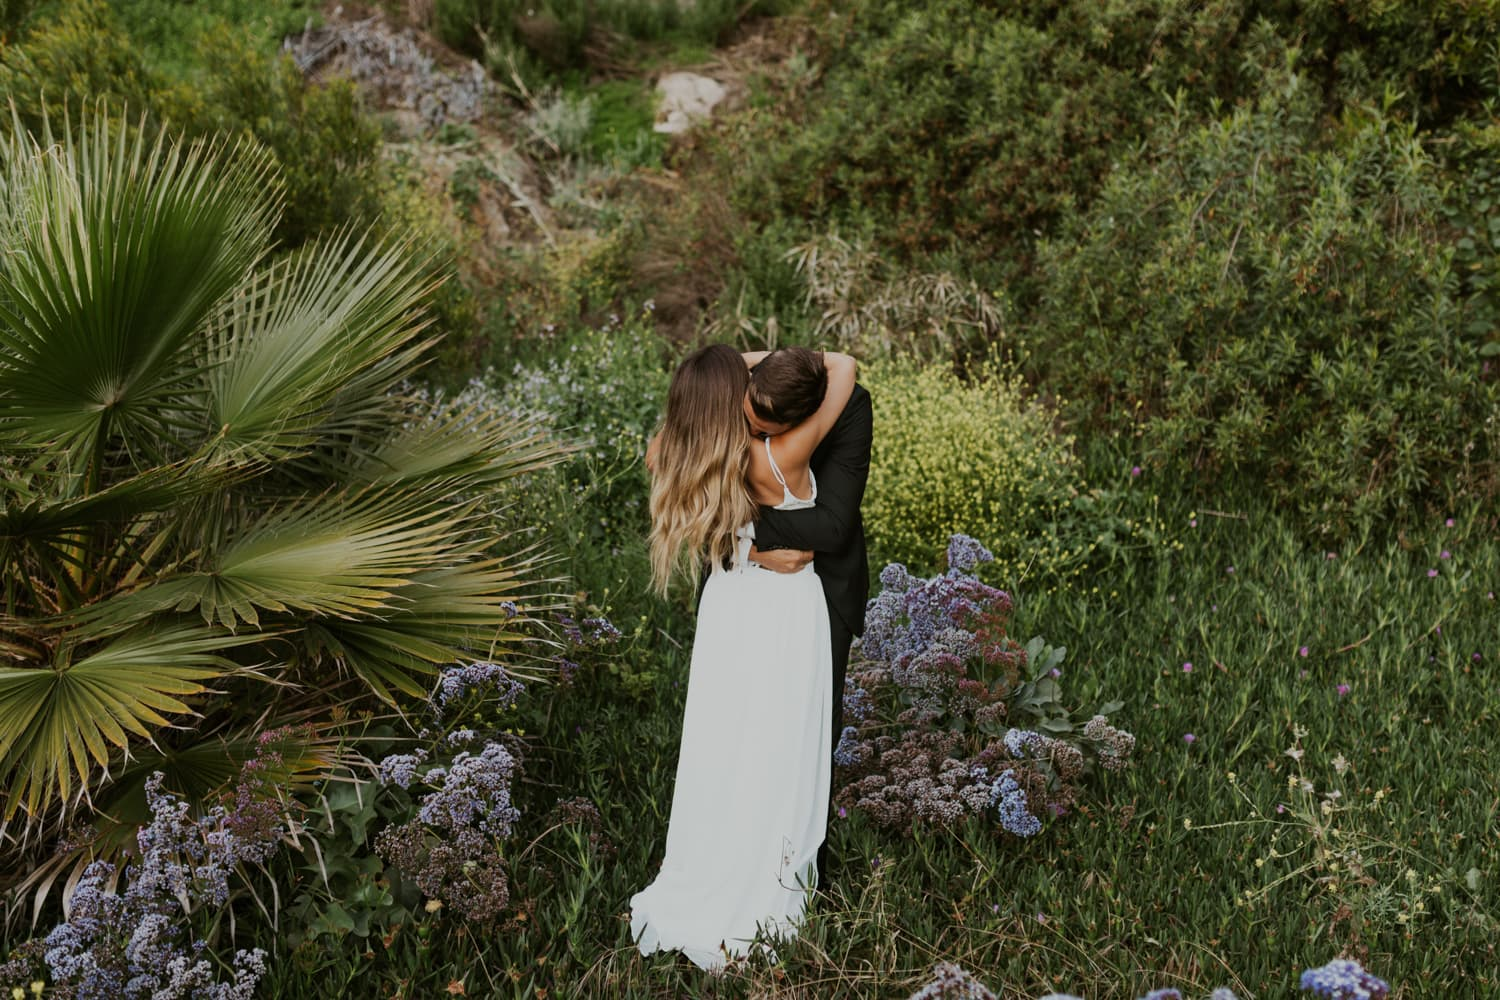 A bride and groom hugging on a beach in California for their elopement.